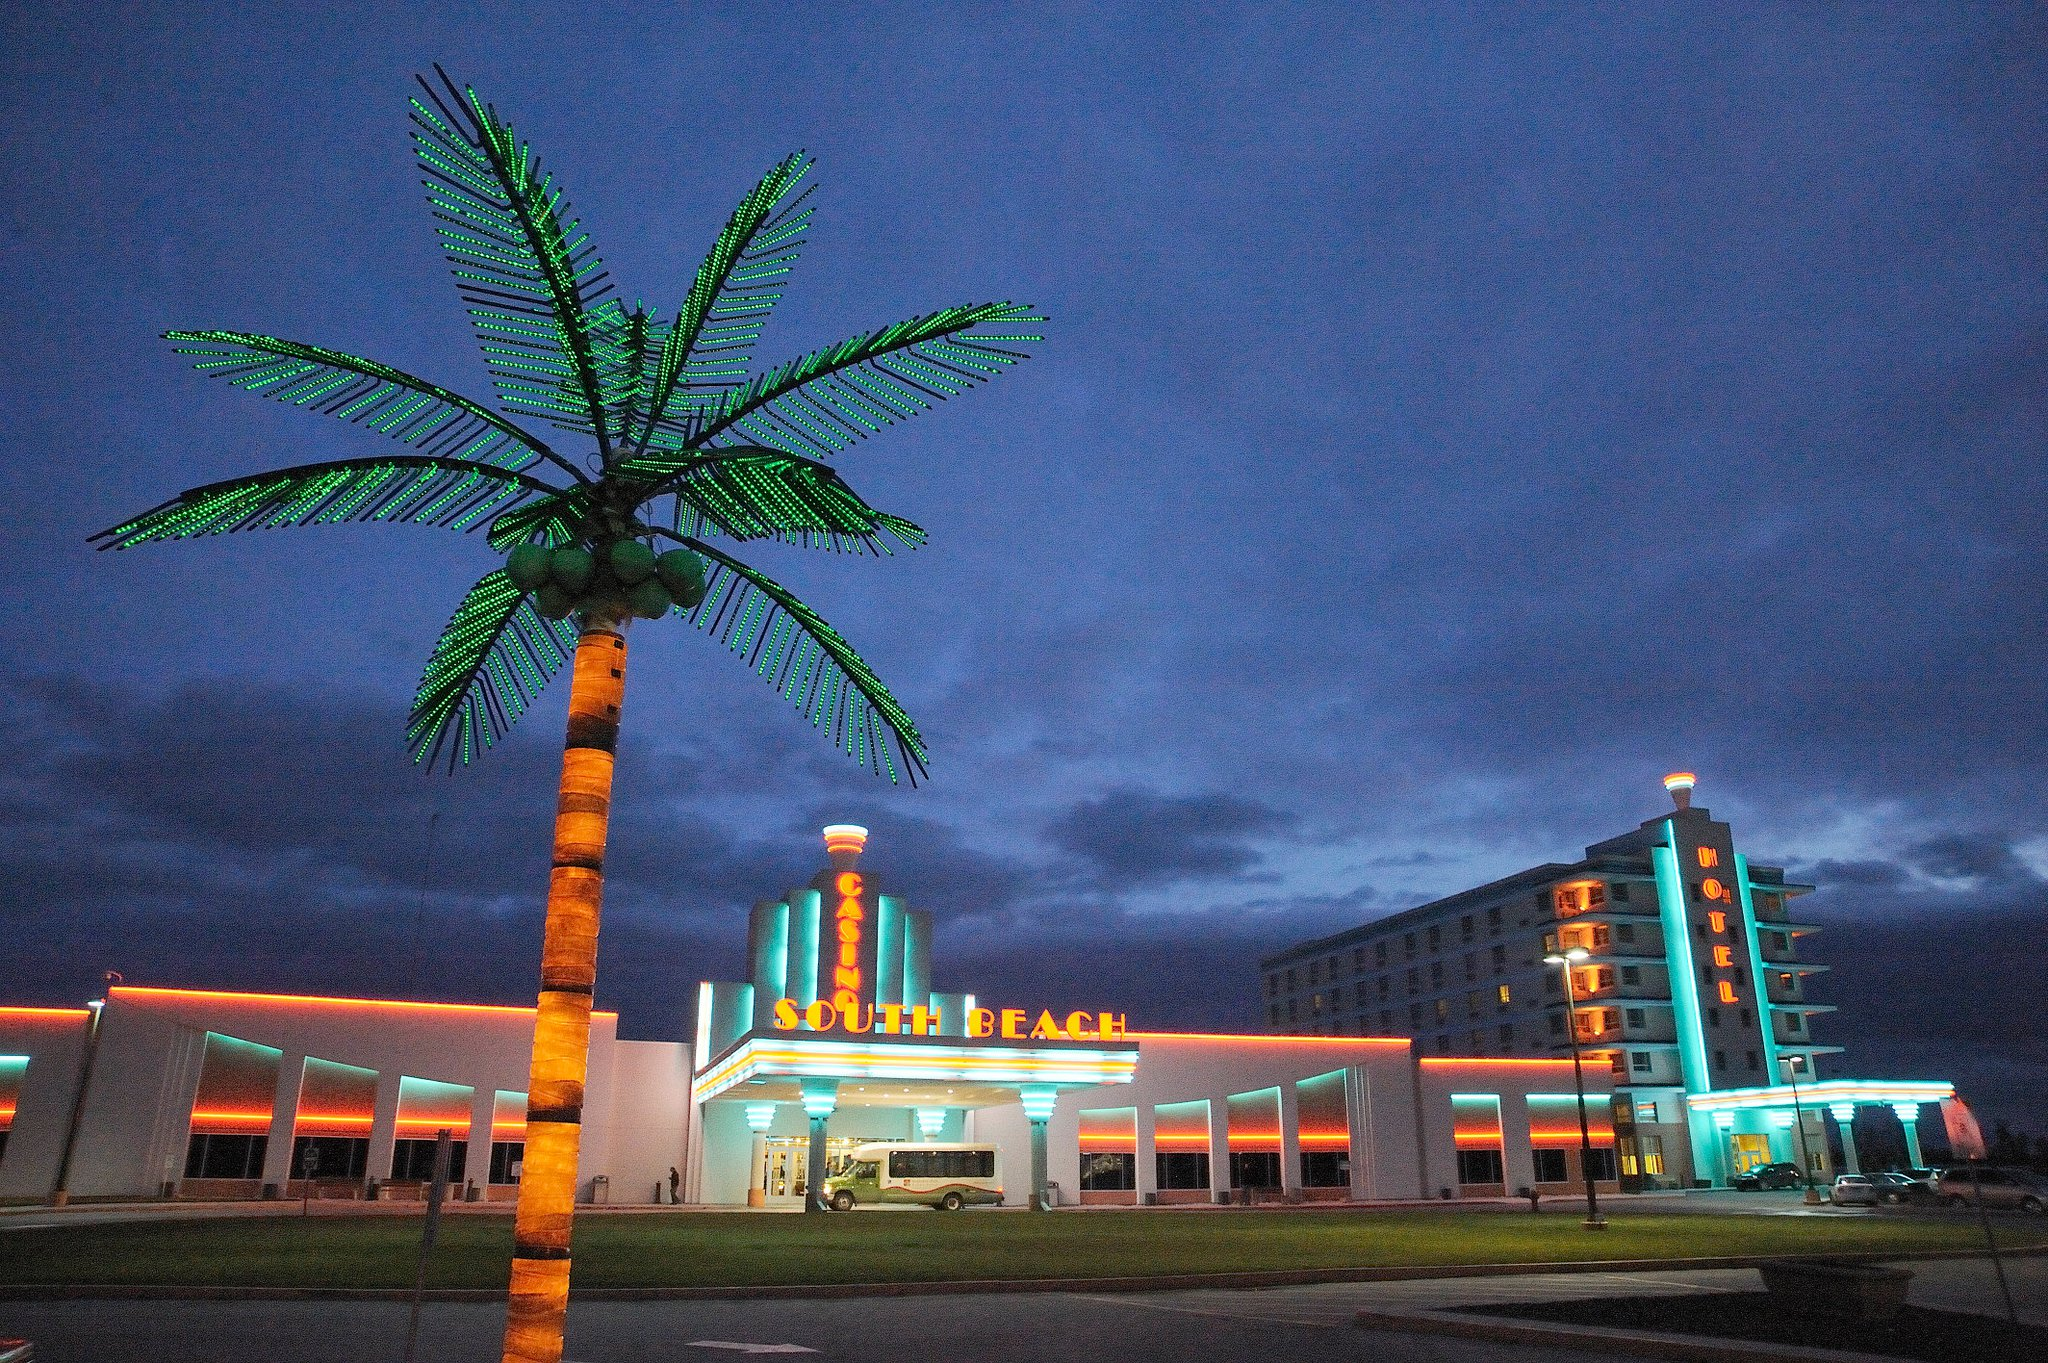 South Beach Casino & Resort